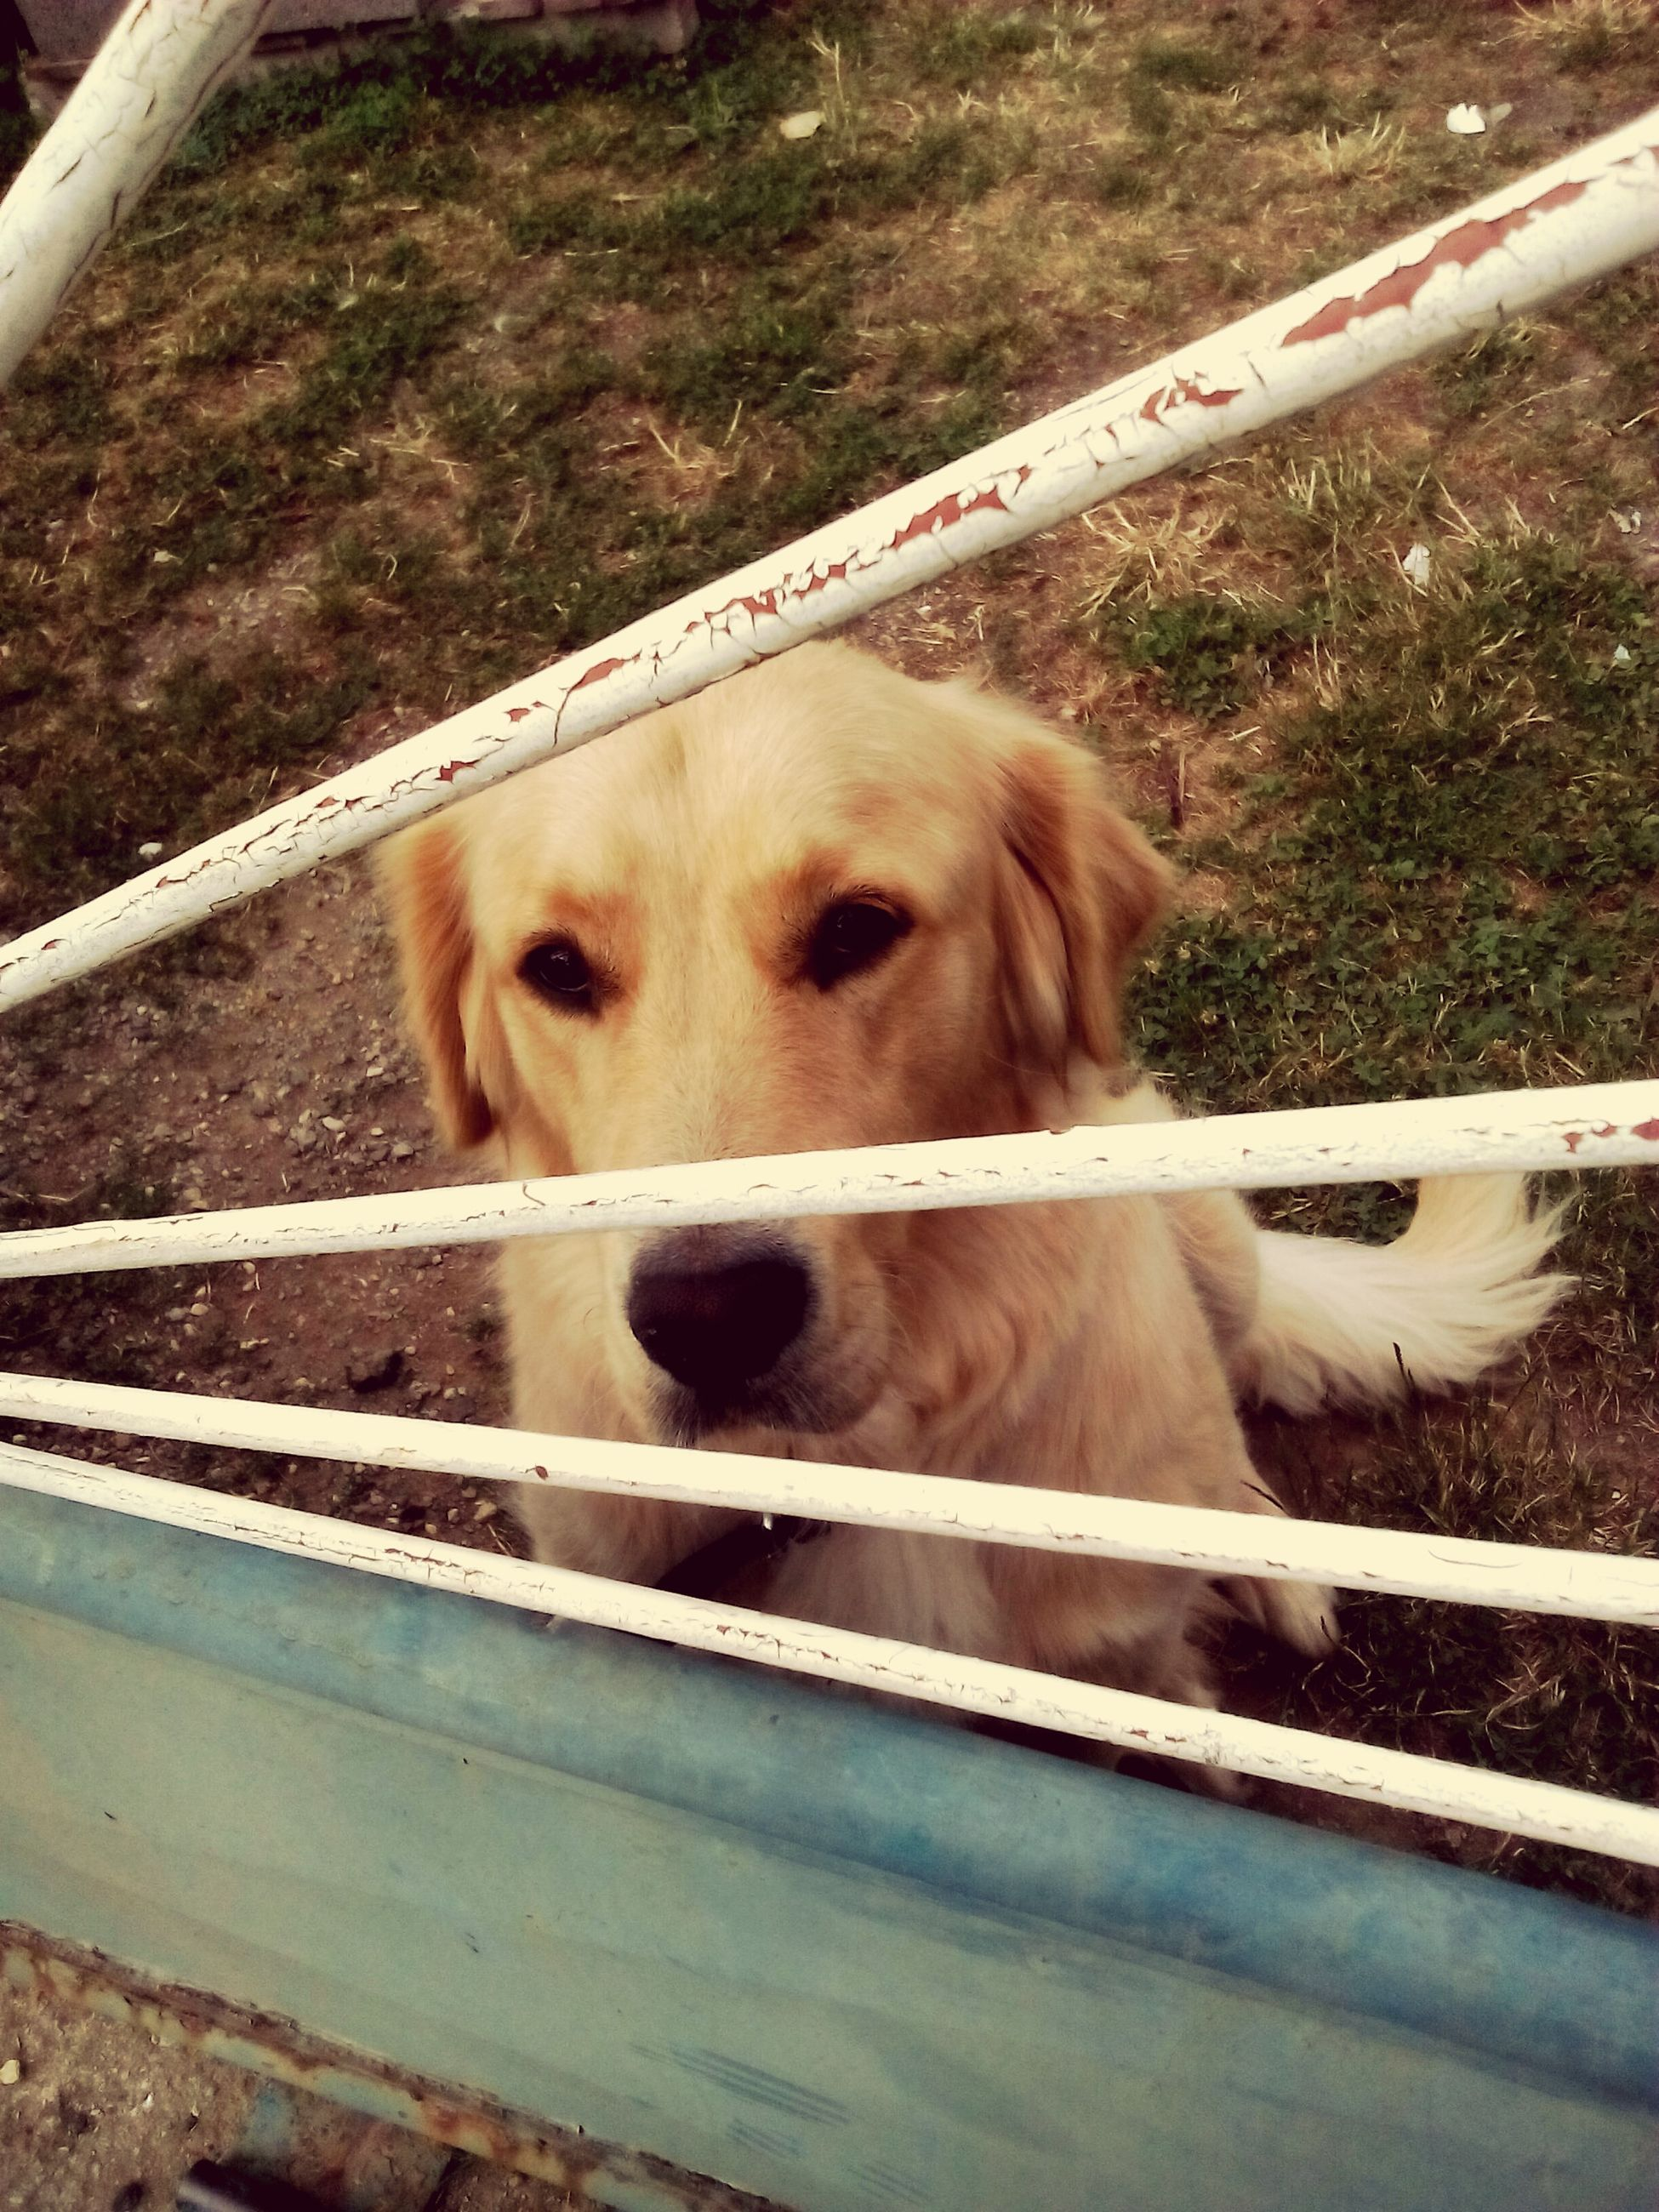 domestic animals, mammal, animal themes, pets, dog, one animal, day, no people, outdoors, close-up, nature